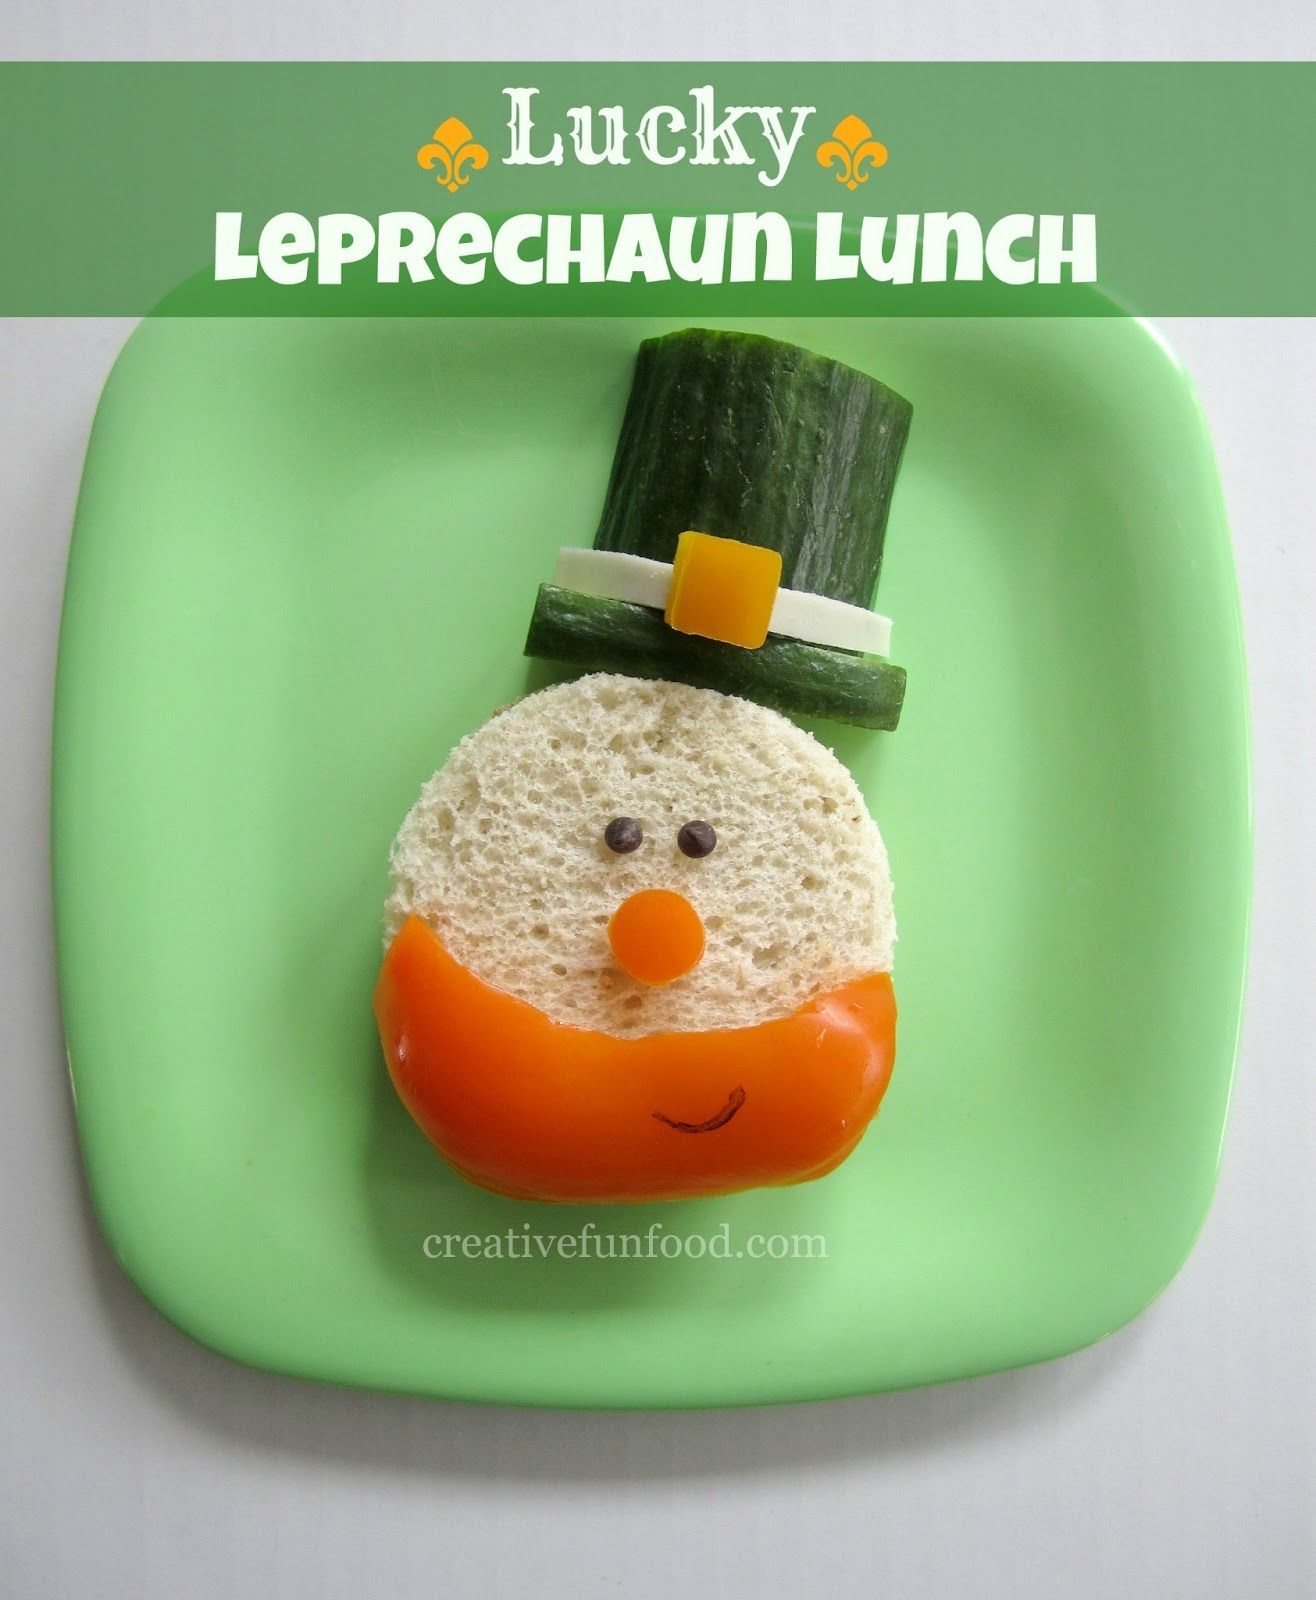 Leprechaun Food | Lucky Leprechaun Lunch creativefunfood.com